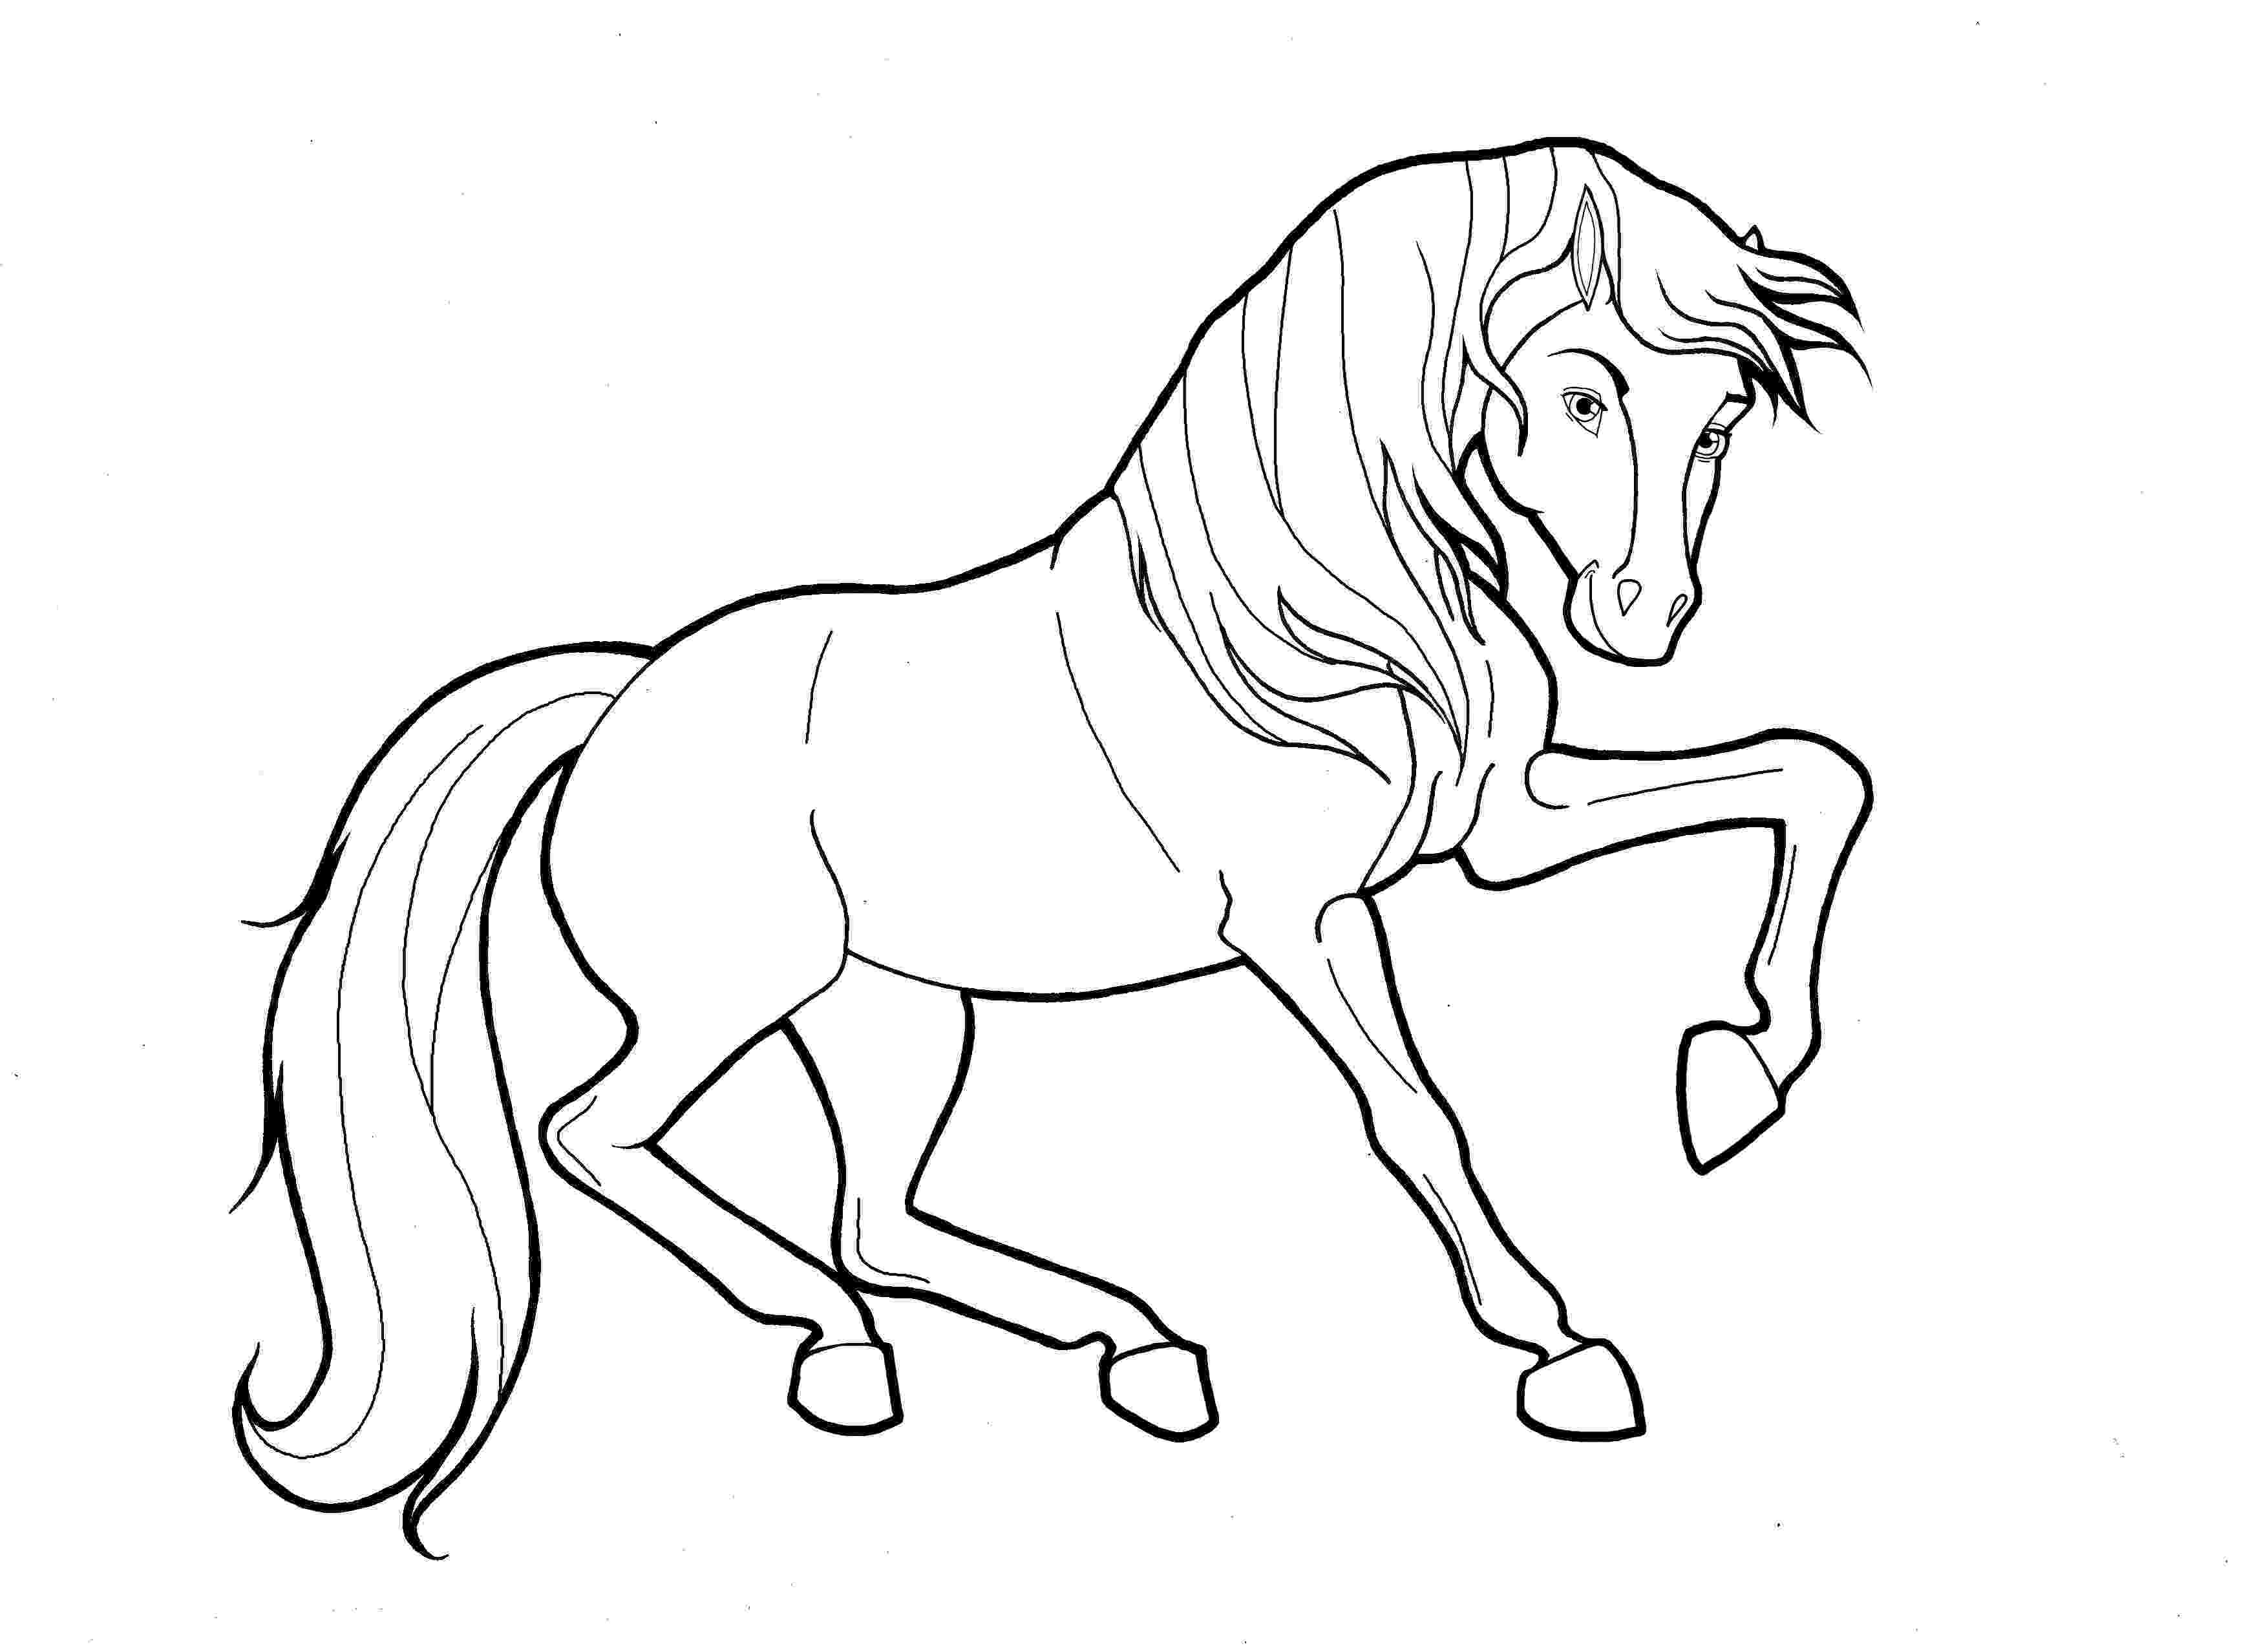 horse colouring free horse coloring pages colouring horse 1 1